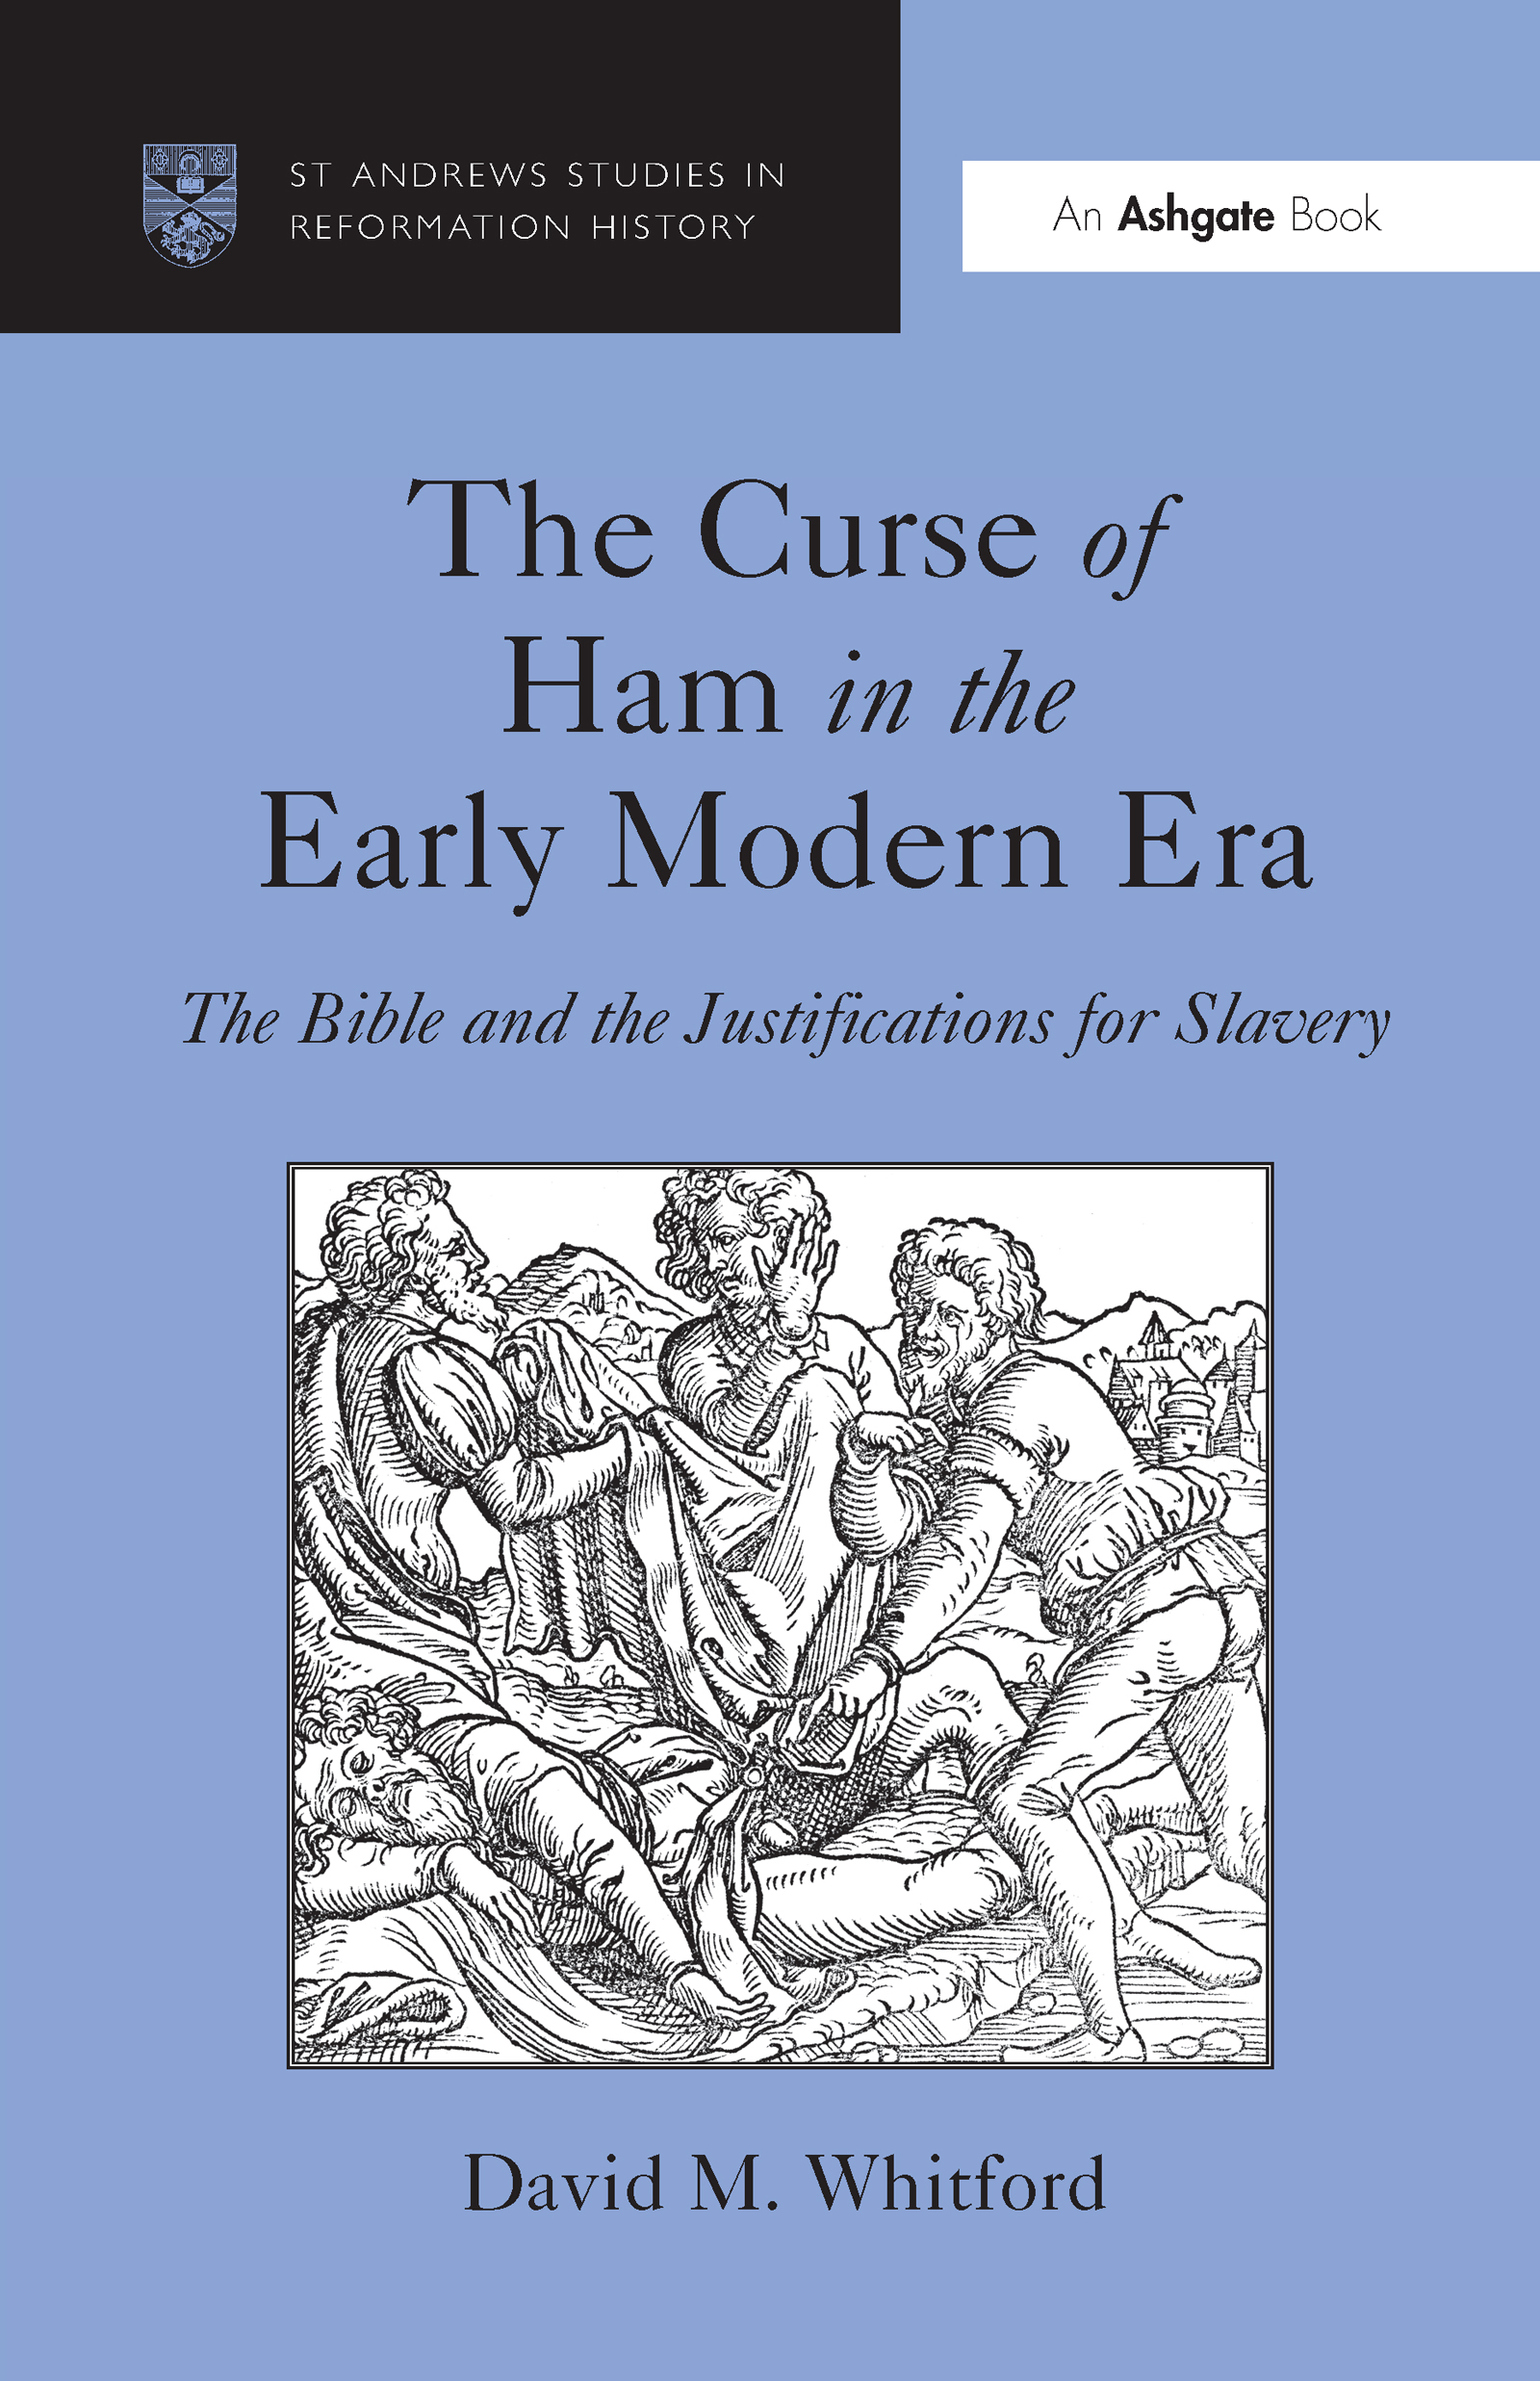 The Curse of Ham in the Early Modern Era: The Bible and the Justifications for Slavery book cover